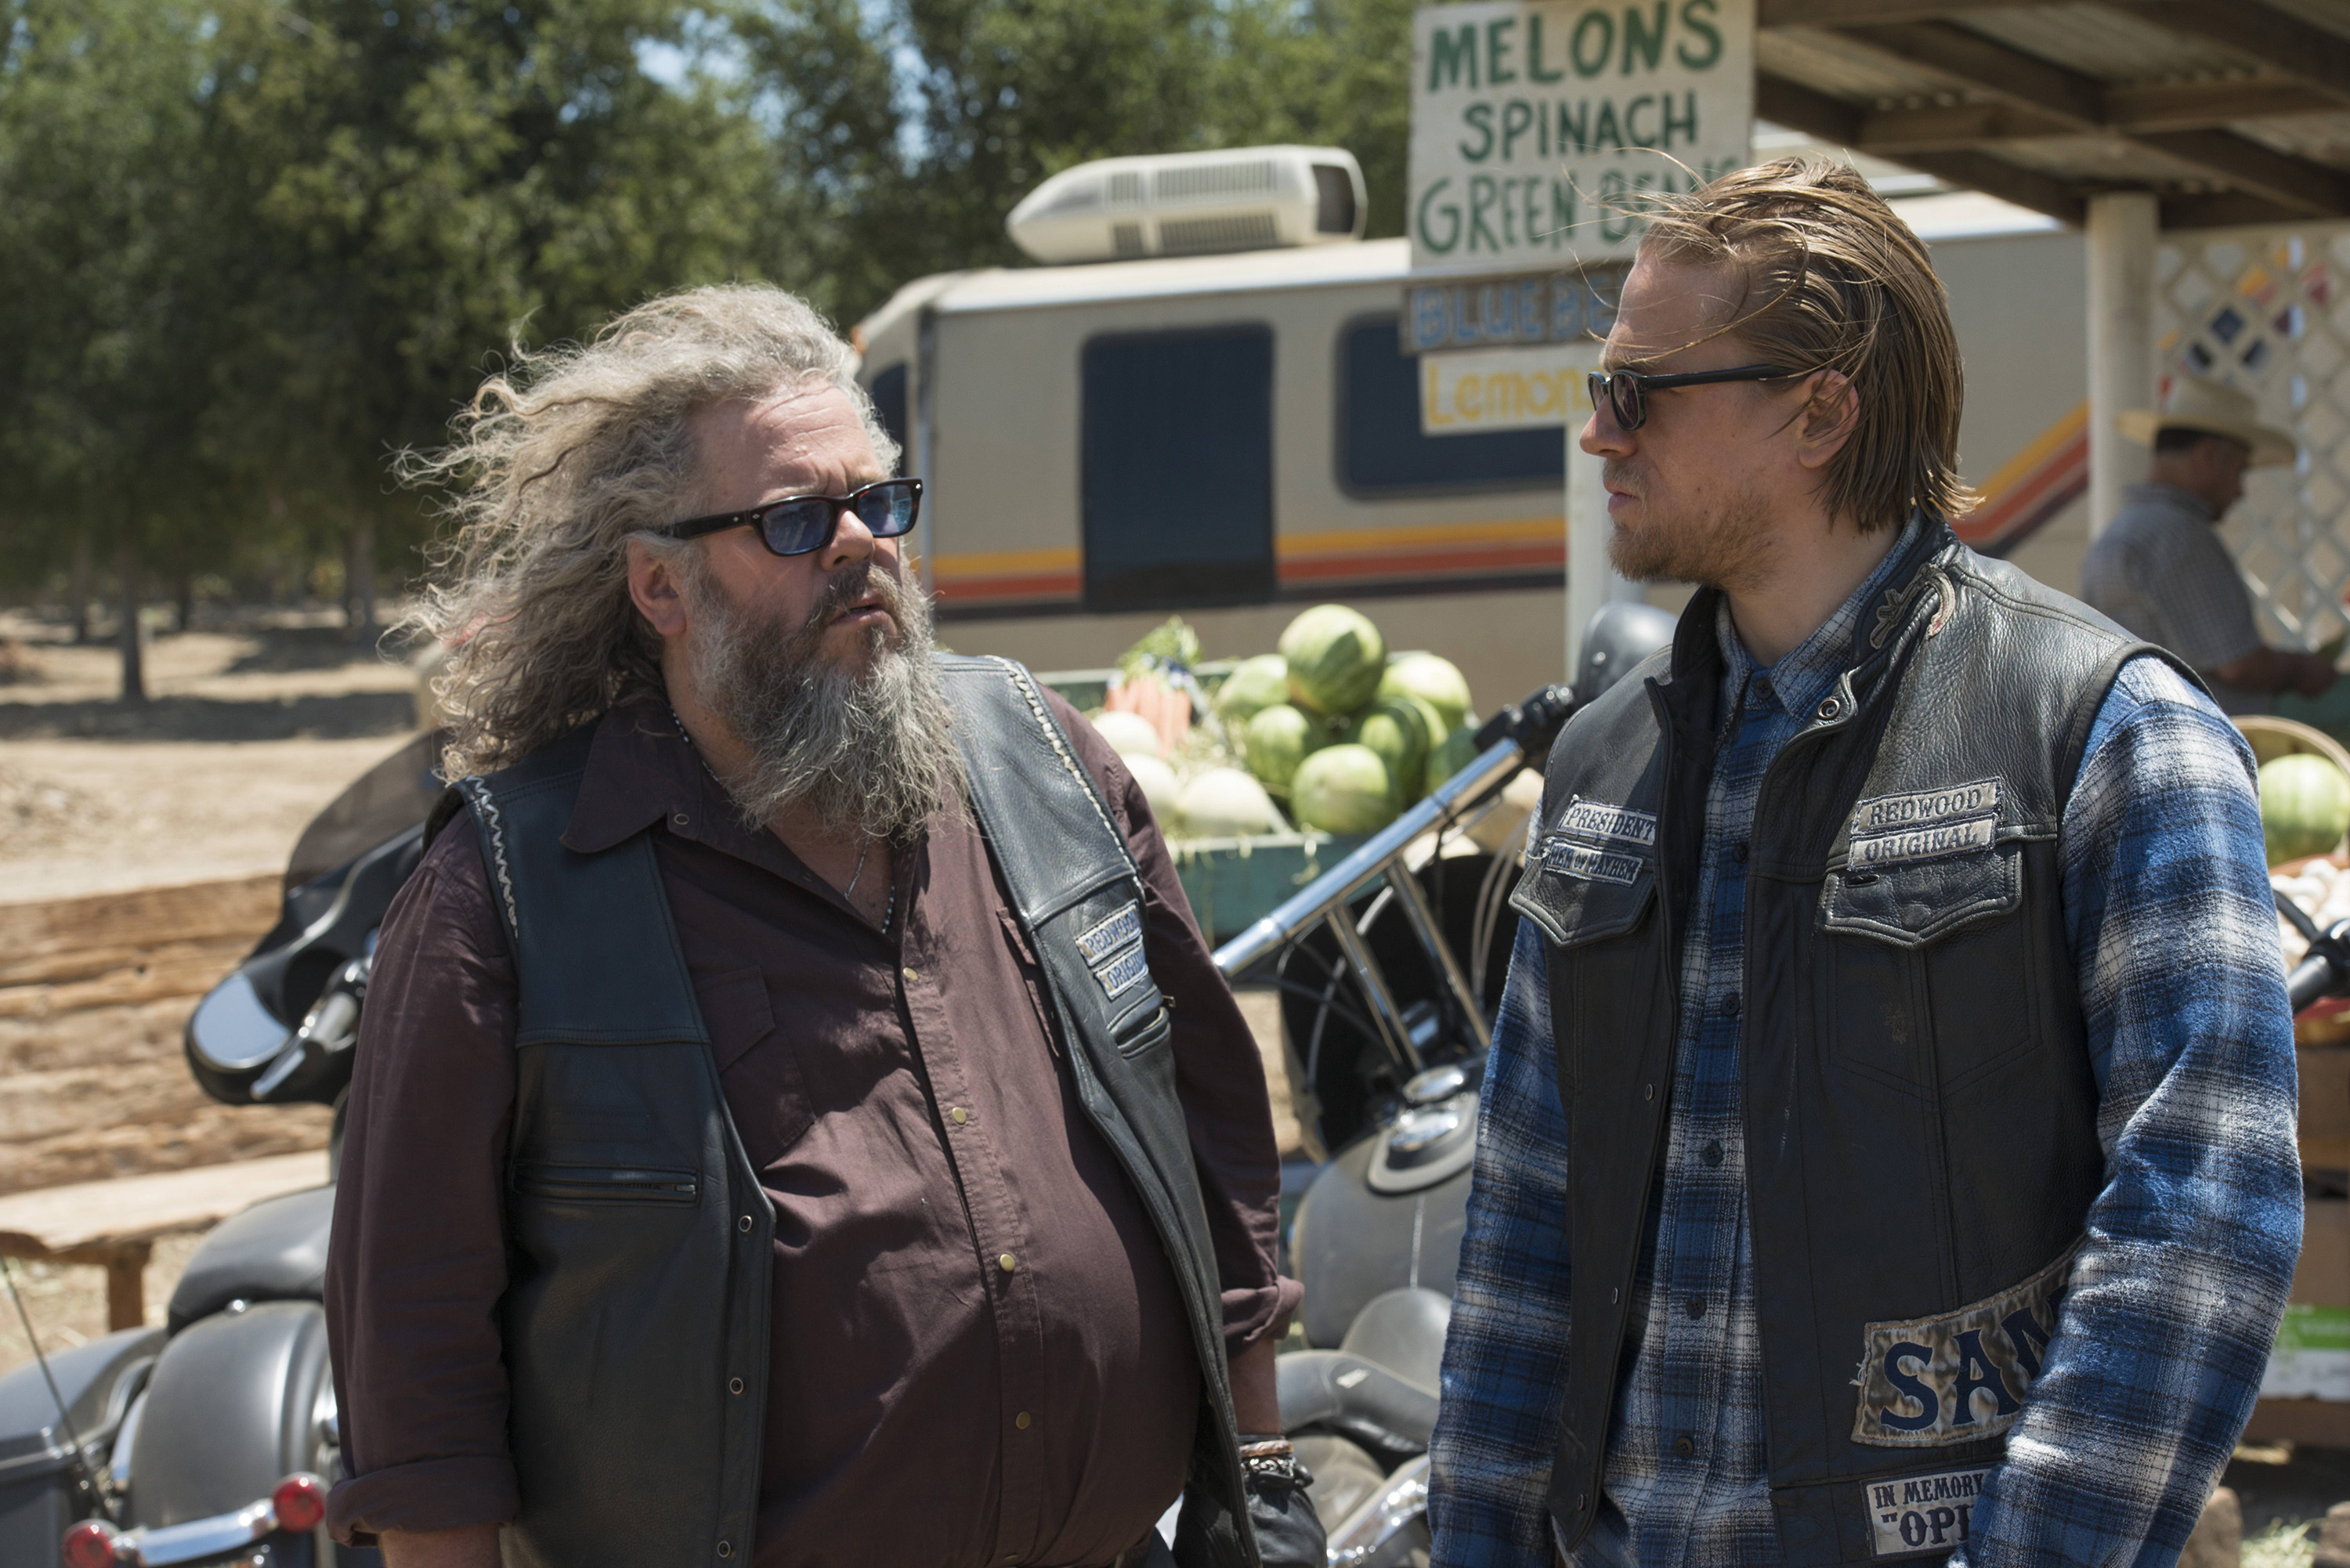 Sons of anarchy s7e2 toil and till recap darkmedia kristyandbryce Choice Image